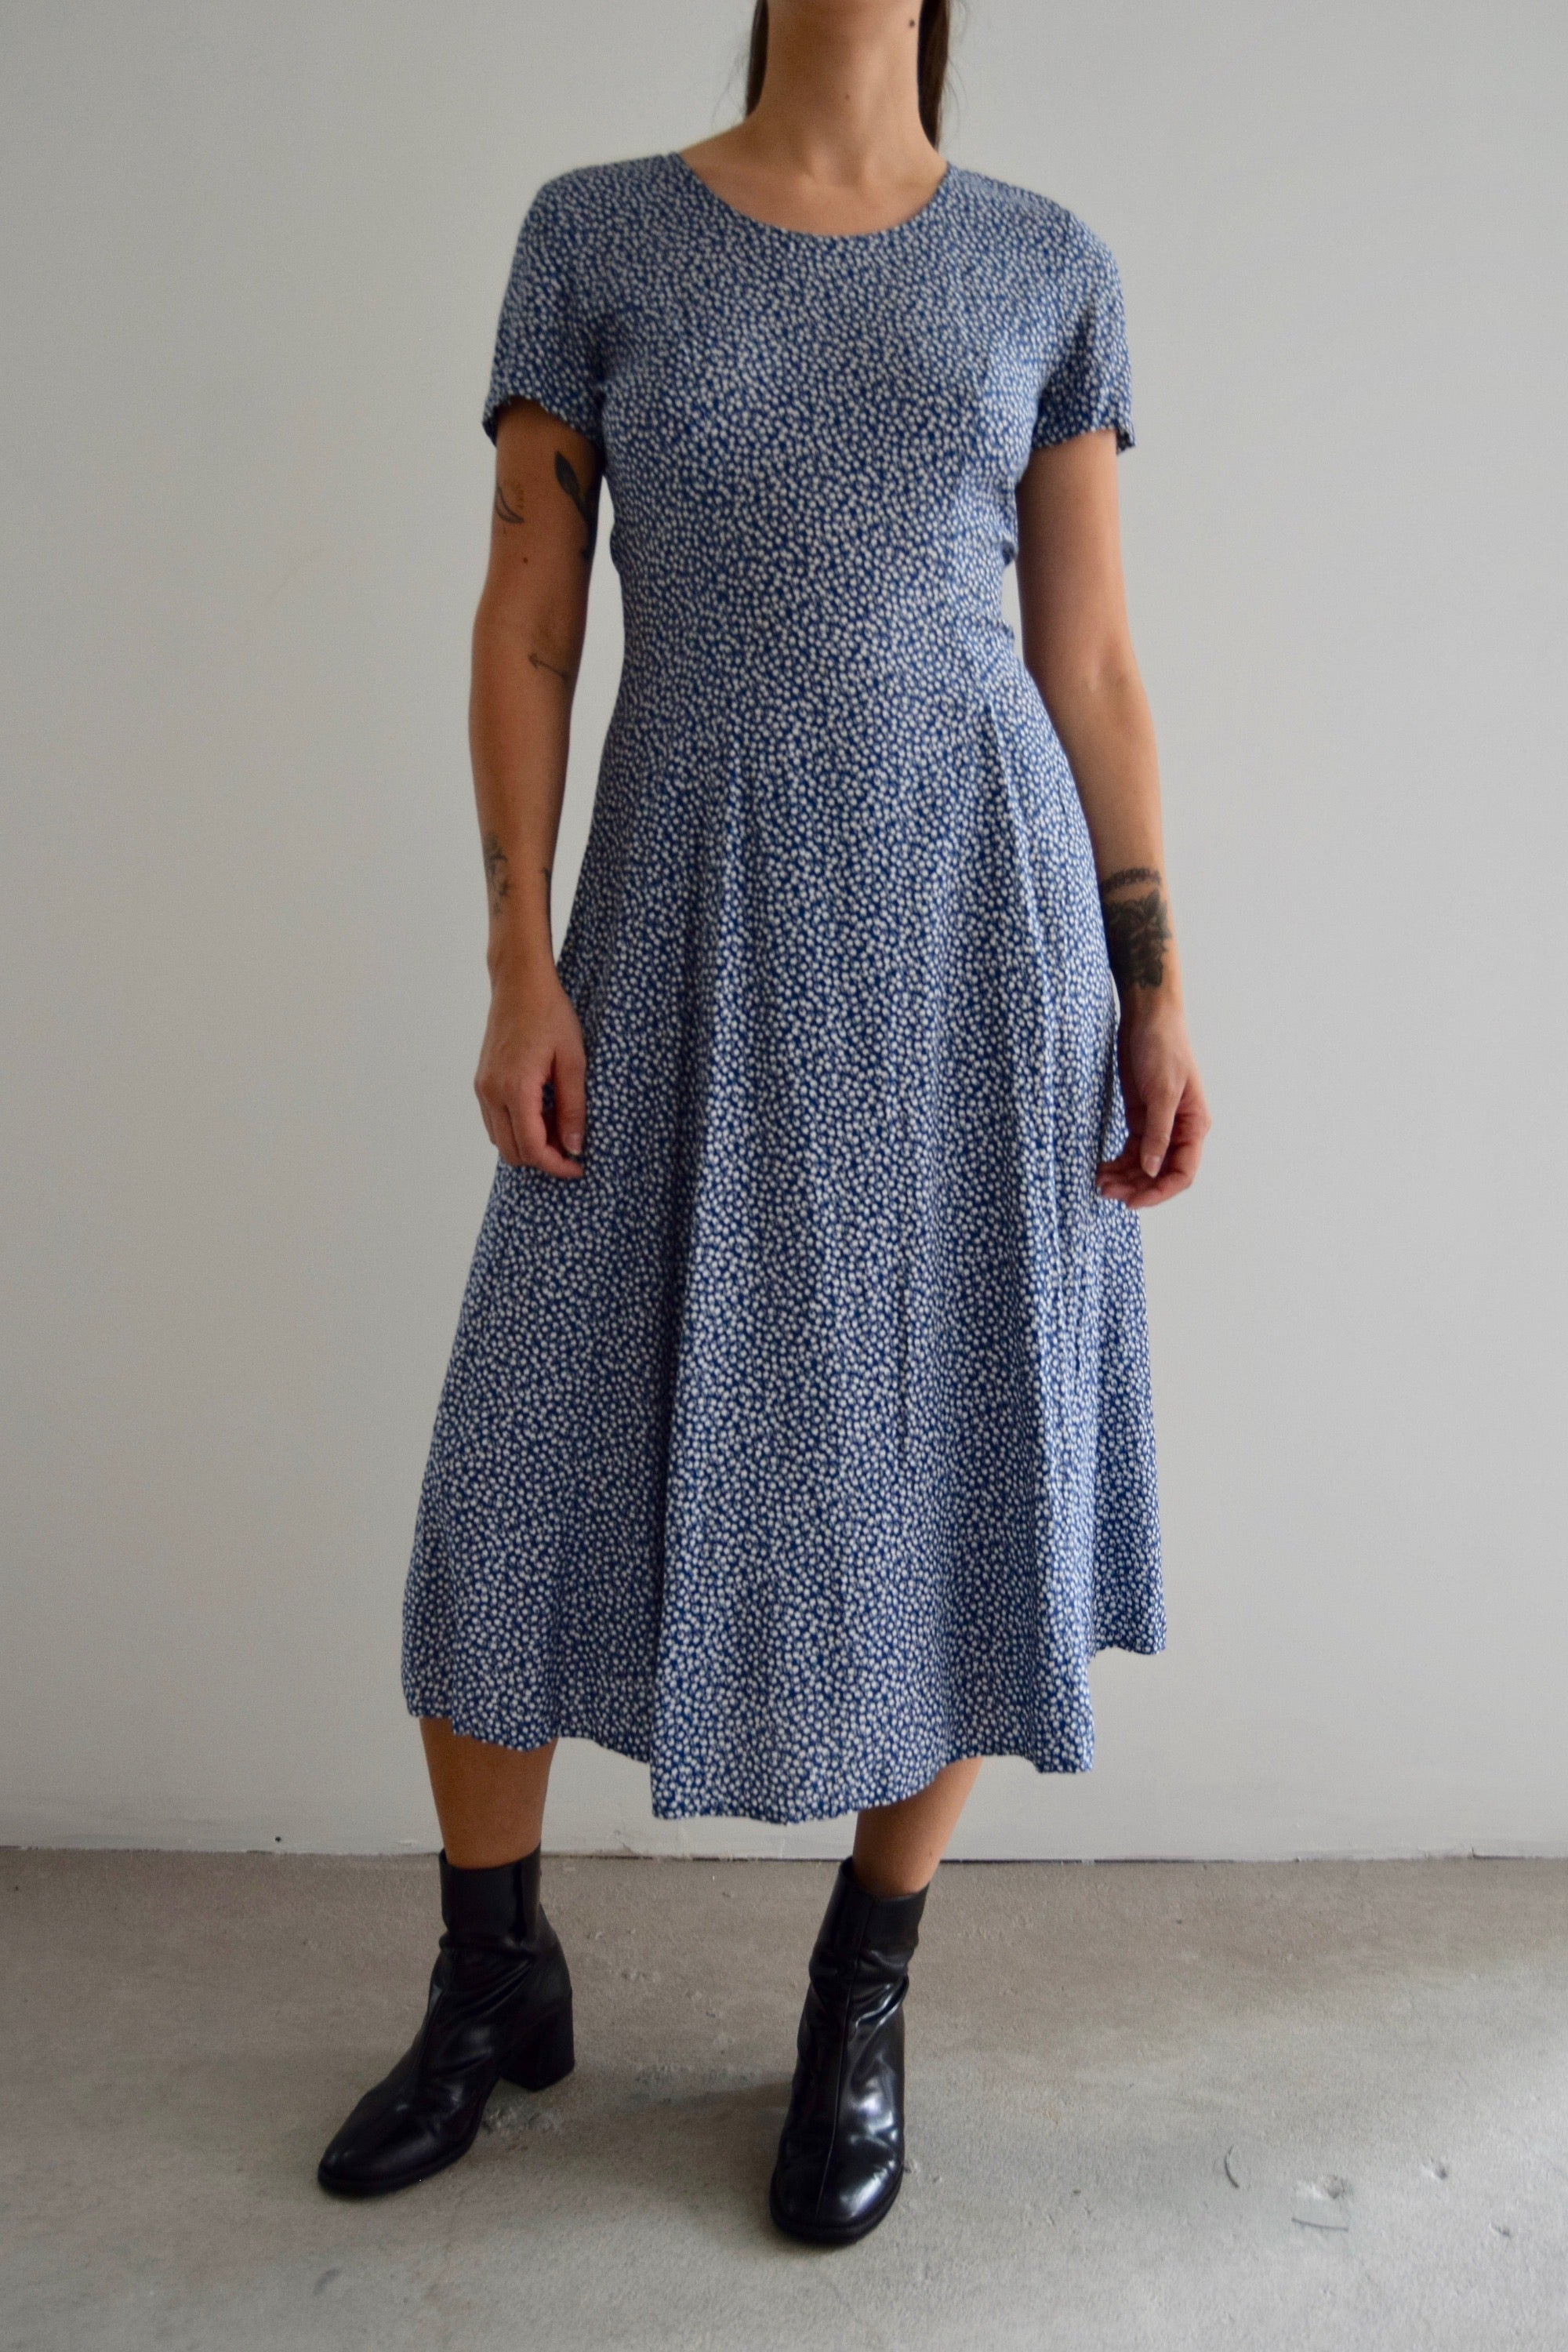 Vintage 90's Rampage White & Blue Square Printed Dress